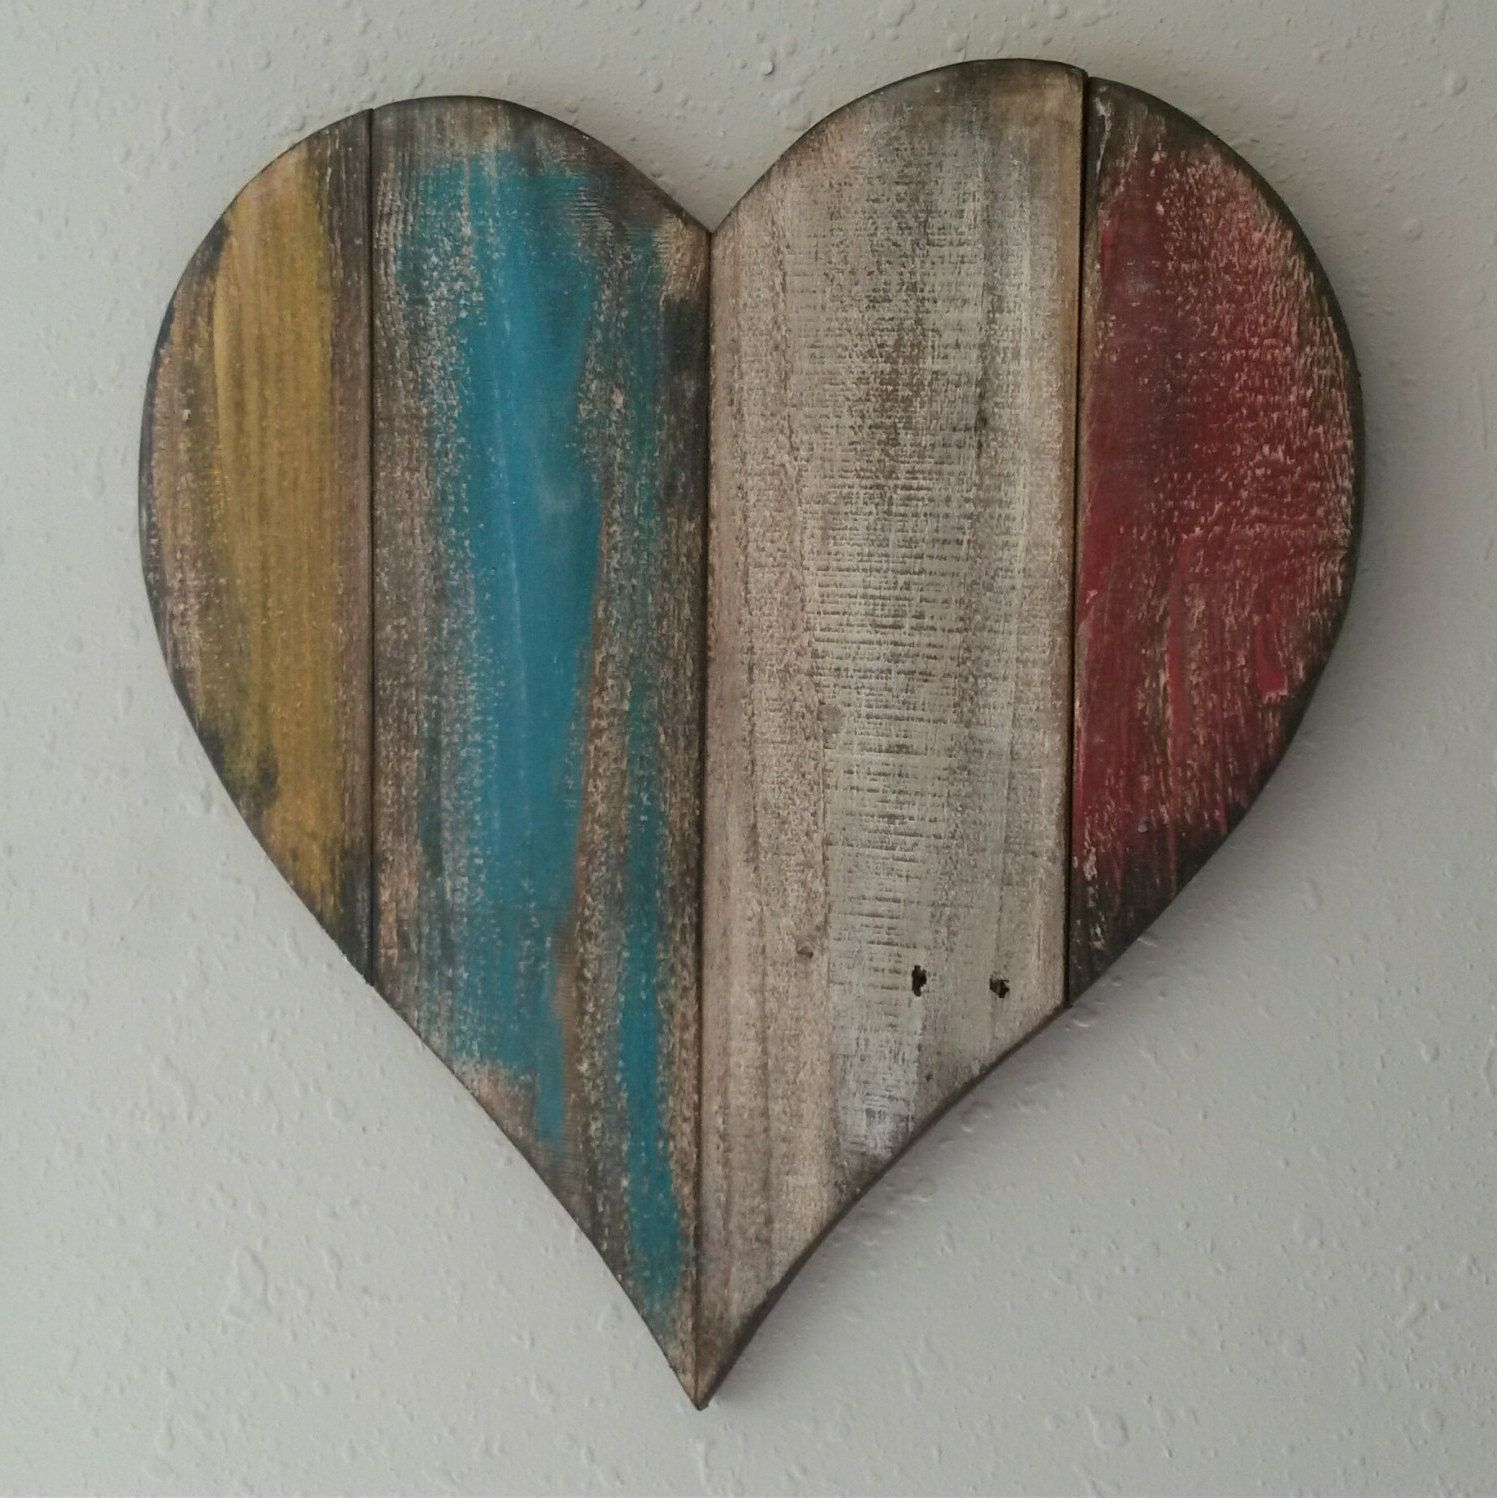 Large Wood Heart Distressed Heart Hand Painted Reclaimed Pallet Rustic Decor Farmhouse Decor Wall Hanging Wood Hearts Pallet Heart Wall Hanging